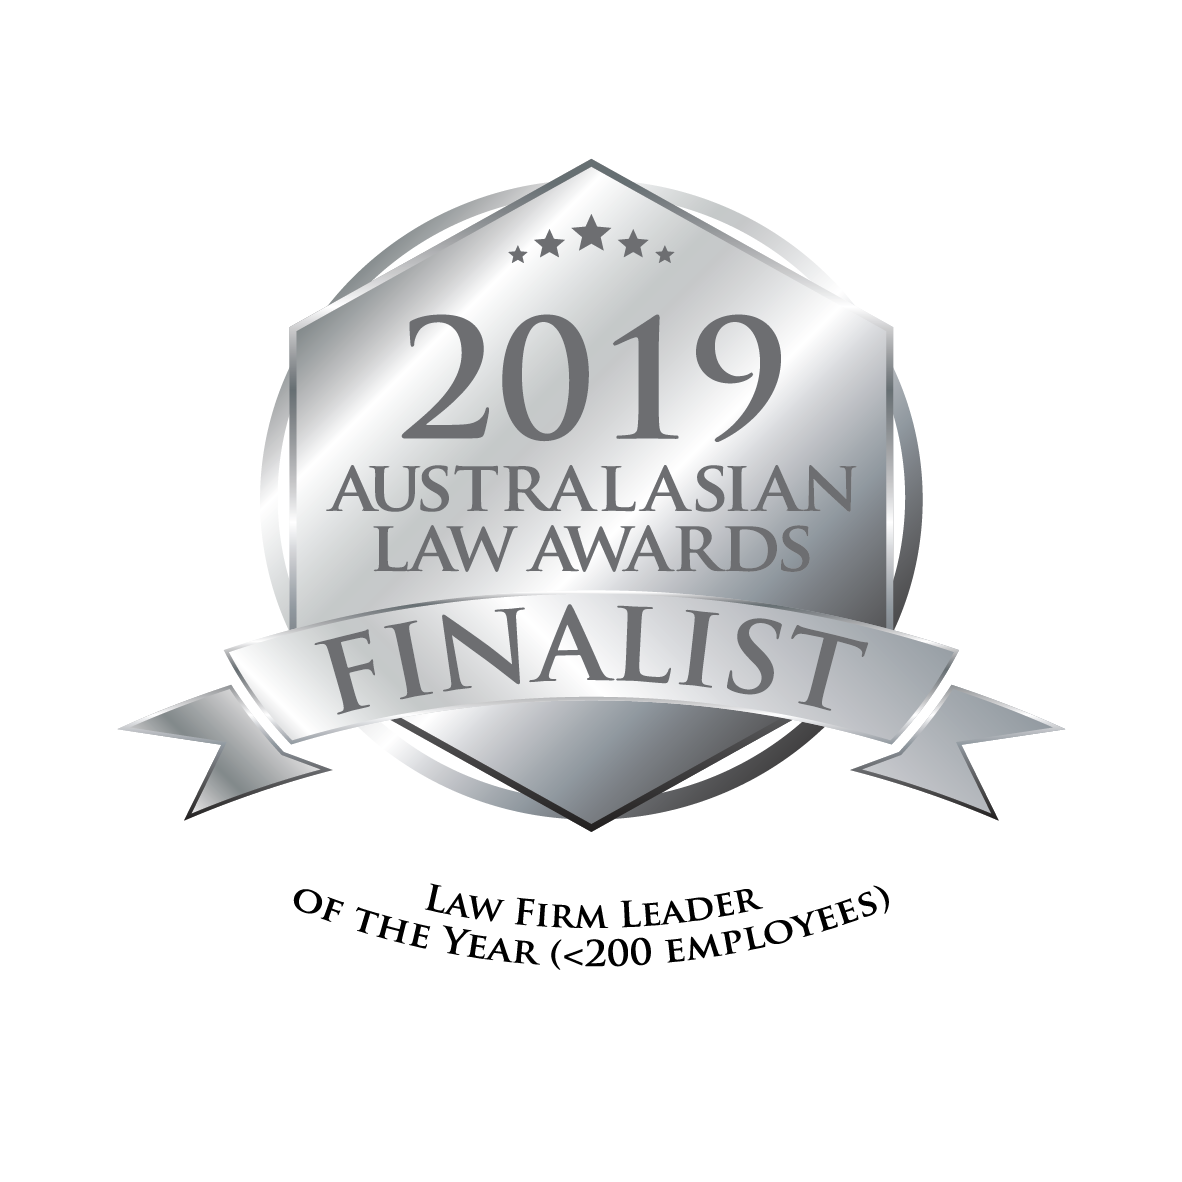 2019 Australasian Law Awards - Finalist - Law Firm Leader of the Year Award (